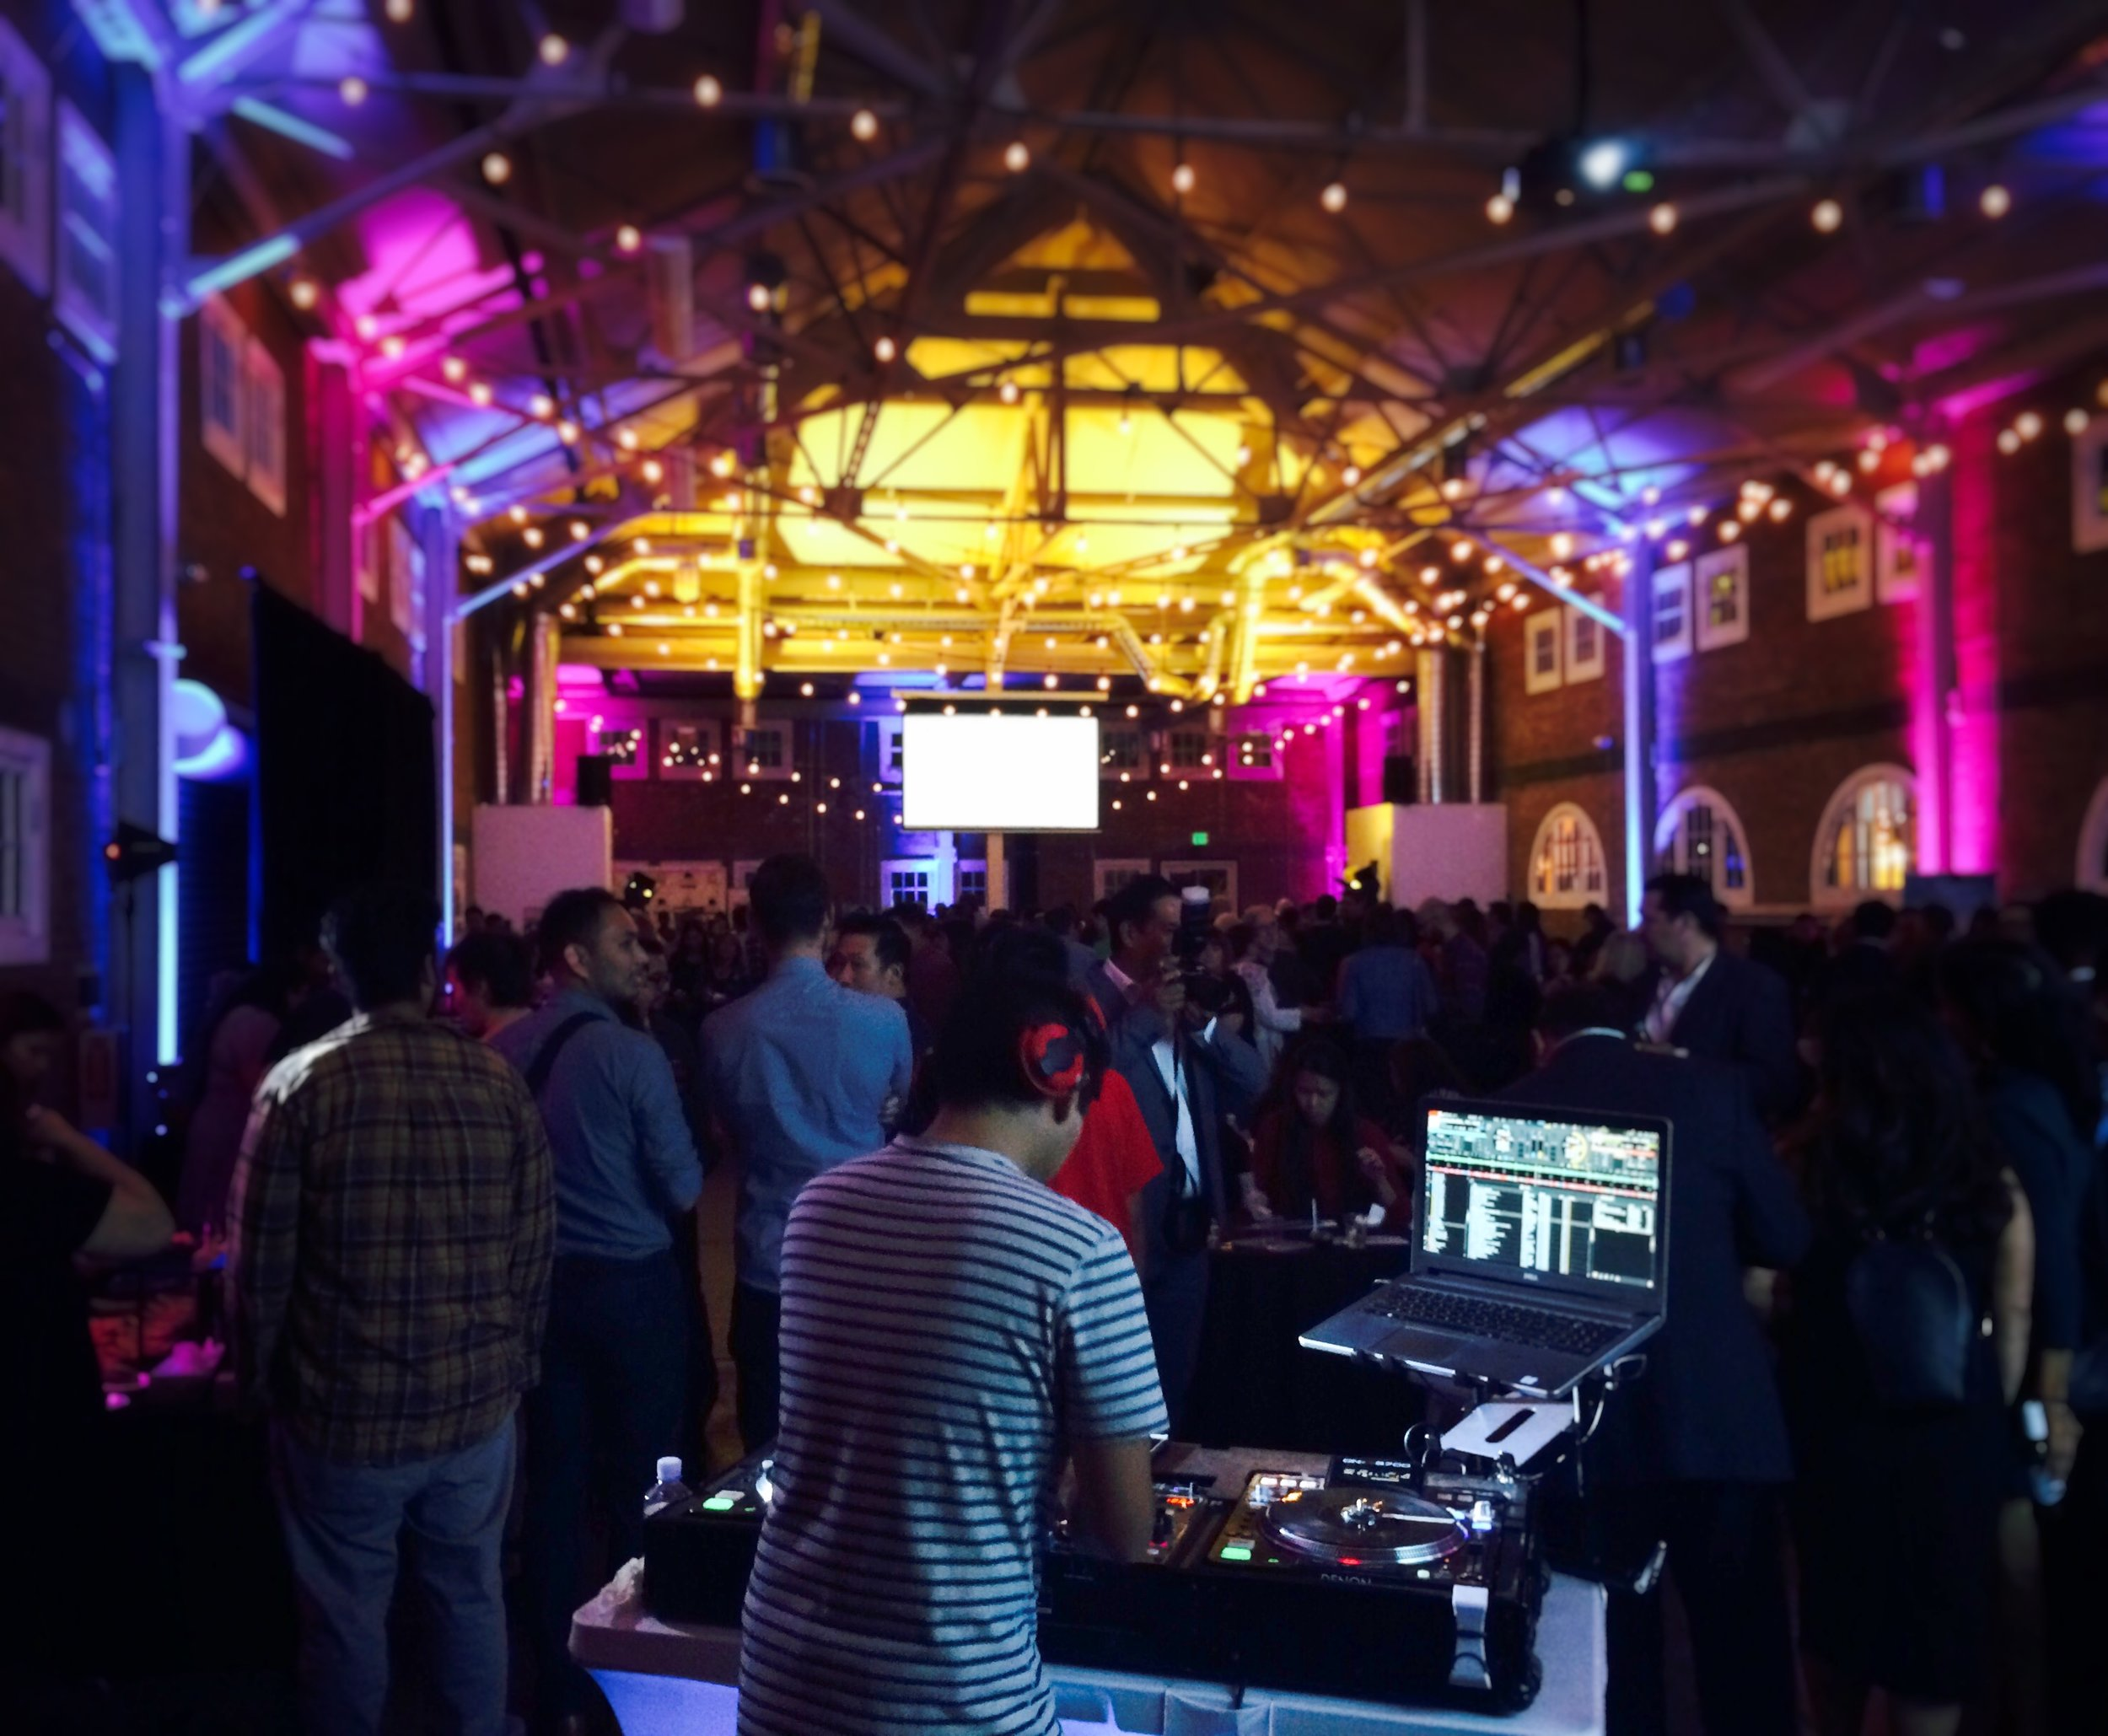 San Diego DJ Justin Kanoya spins music at an event at Brick, located in Liberty Station, San Diego. Uplighting and ceiling wash lighting transform this warehouse, brick building into a dynamic event space.